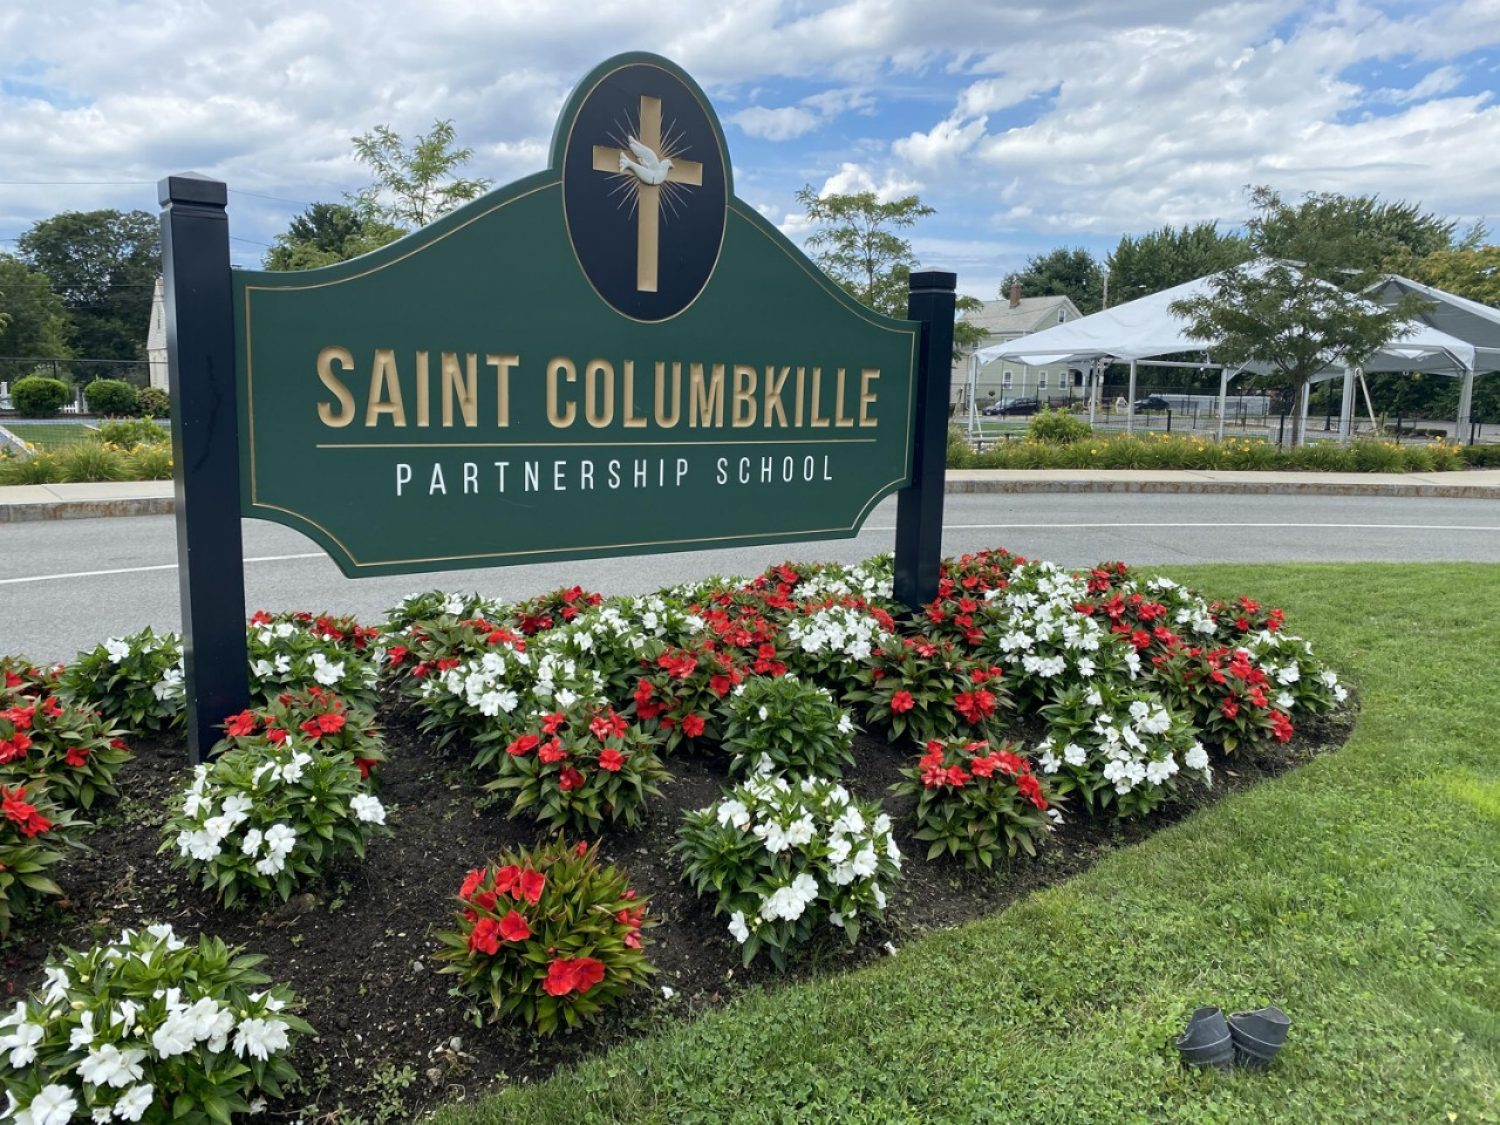 Saint Columbkille sign